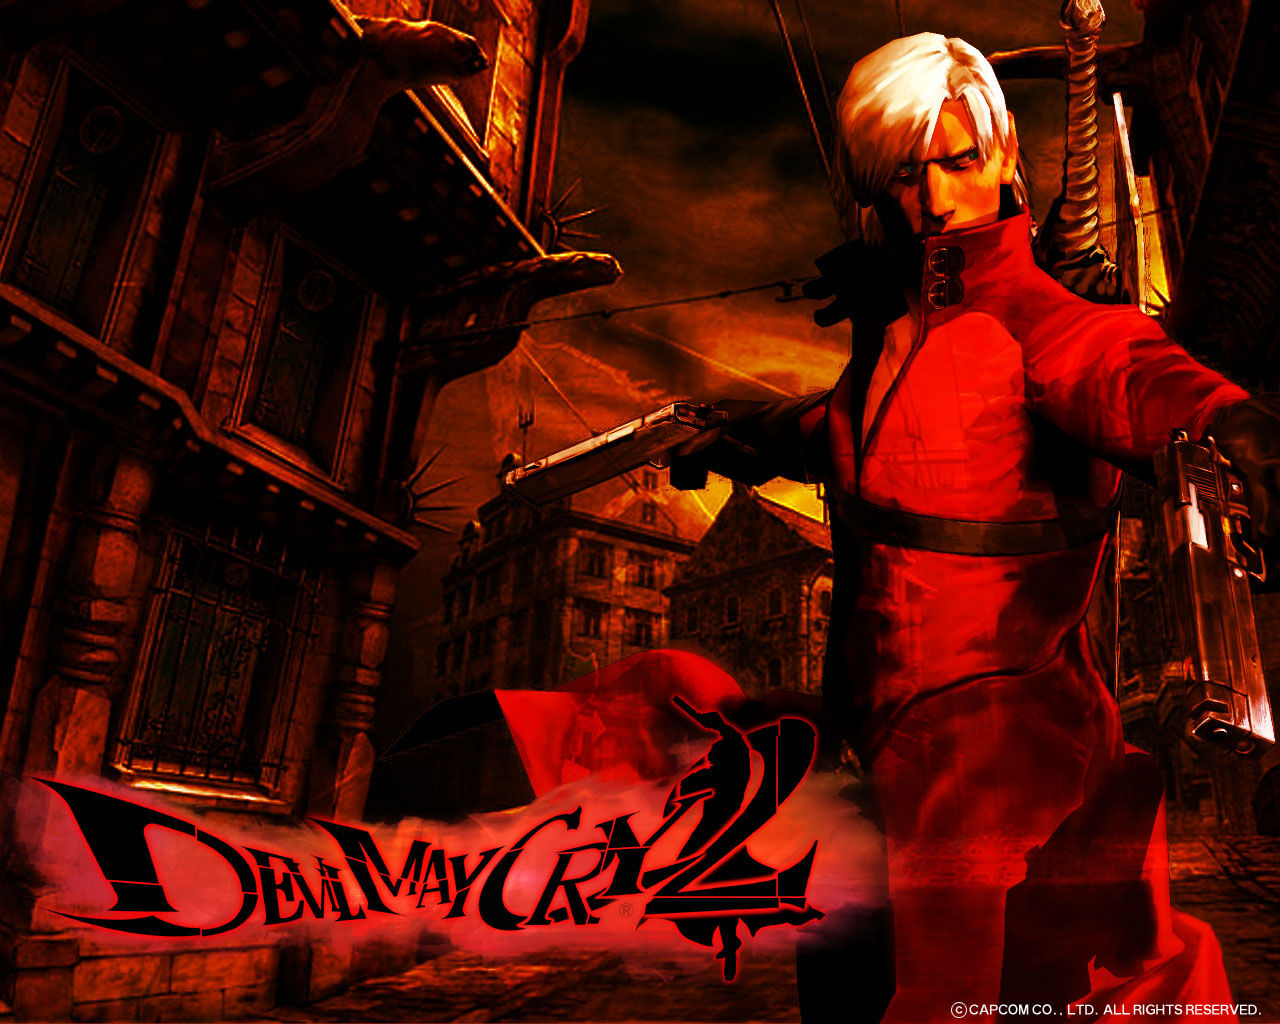 devil may cry 2 images devil may cry 2 wallpaper hd